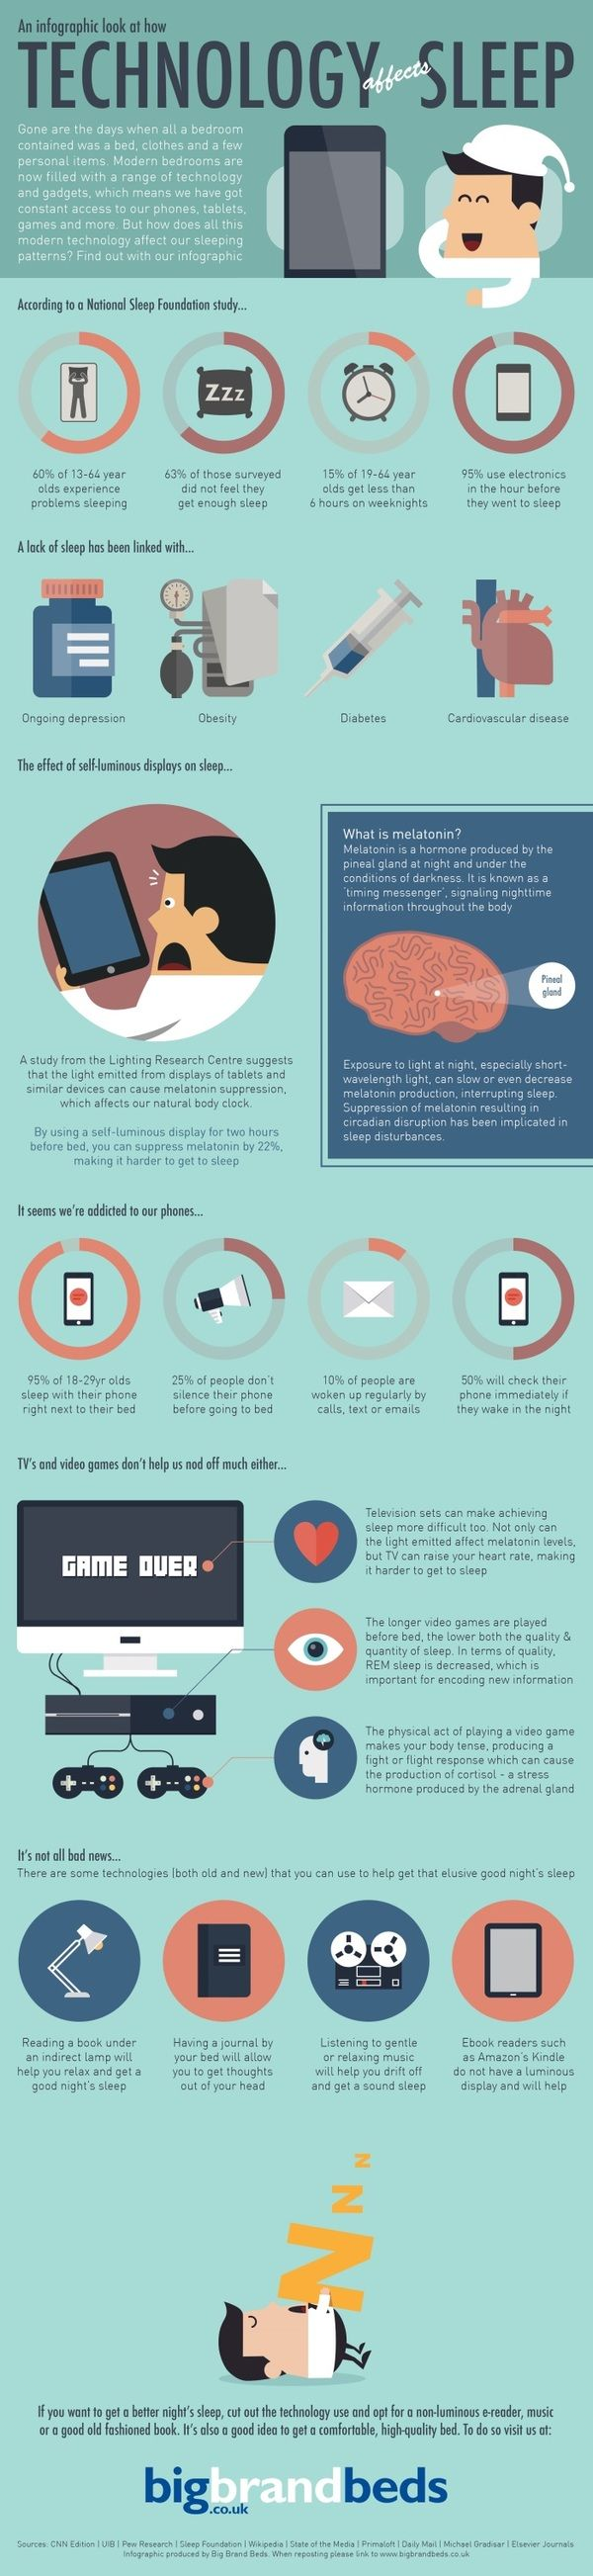 Today I have an infographic from a United Kingdom based cheap bed store called Big Brand Beds all about how technology can affect sleep. The 1st part of the infographic provides statistics from the N…